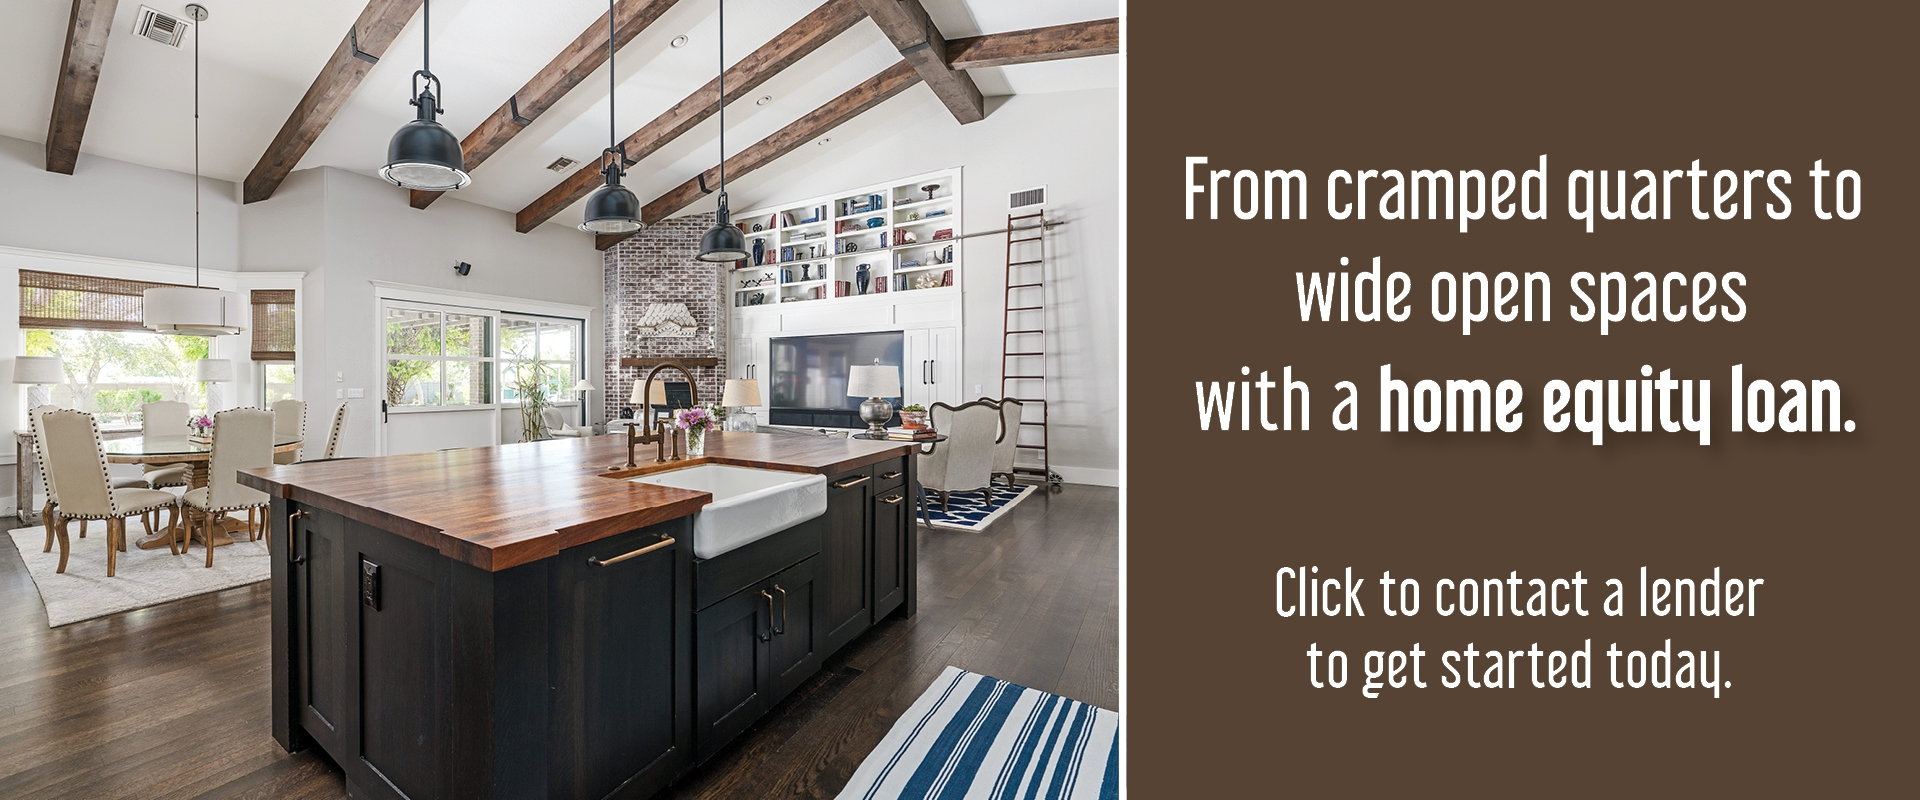 Open concept home - From cramped quarters to wide open spaces with a home equity loan Banner